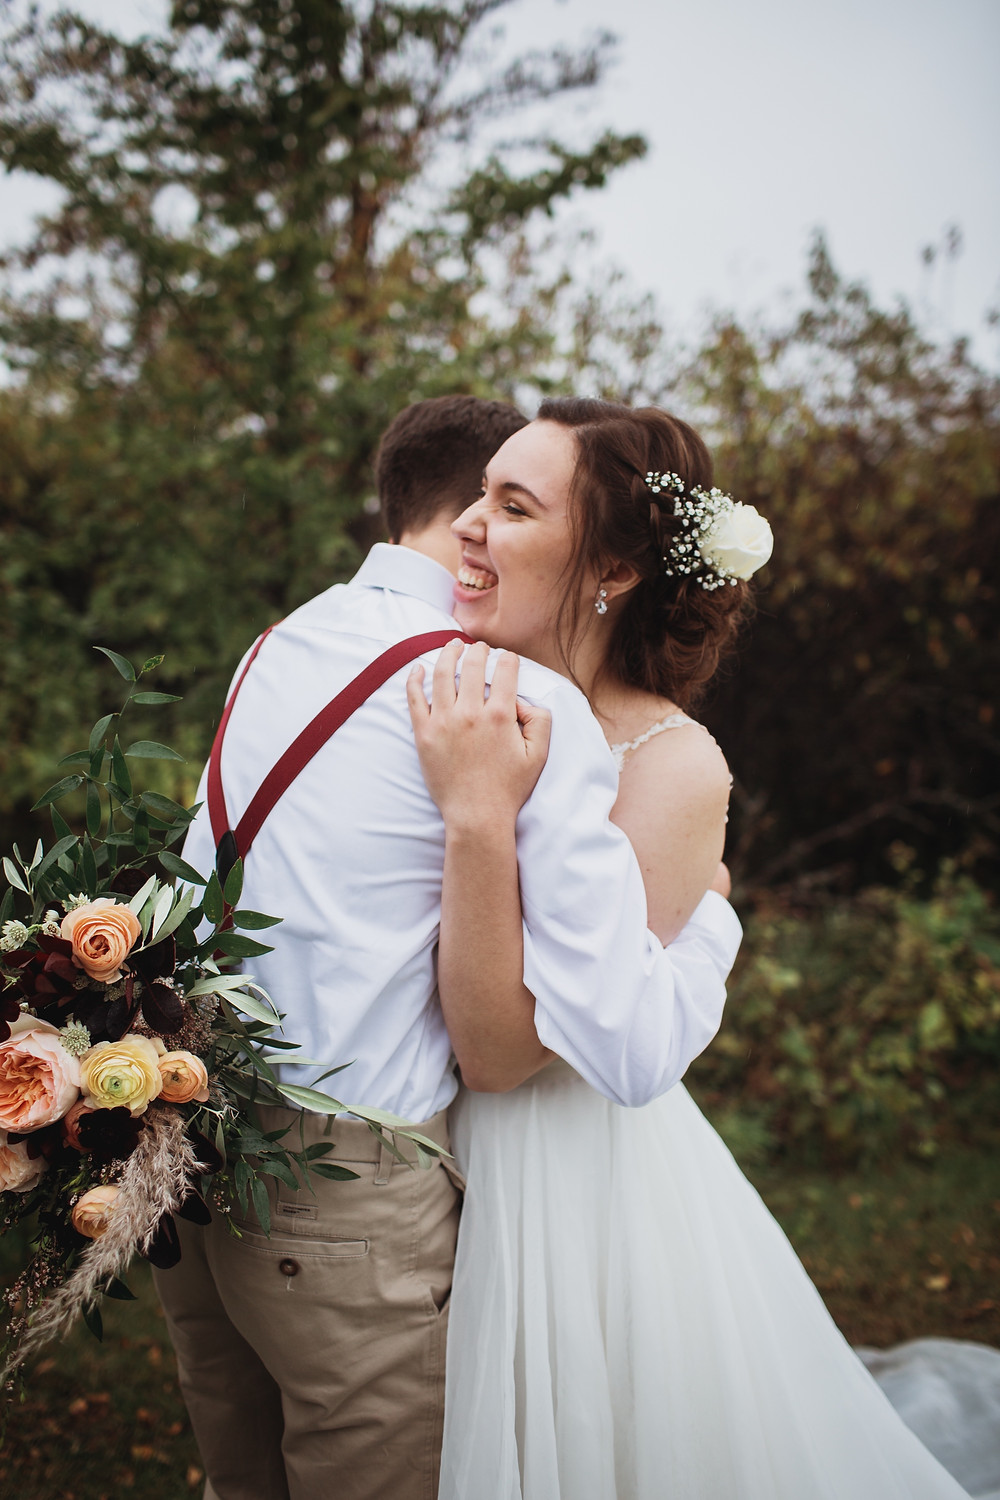 Fall bride and groom embrace on their wedding day in Winkler, Manitoba.